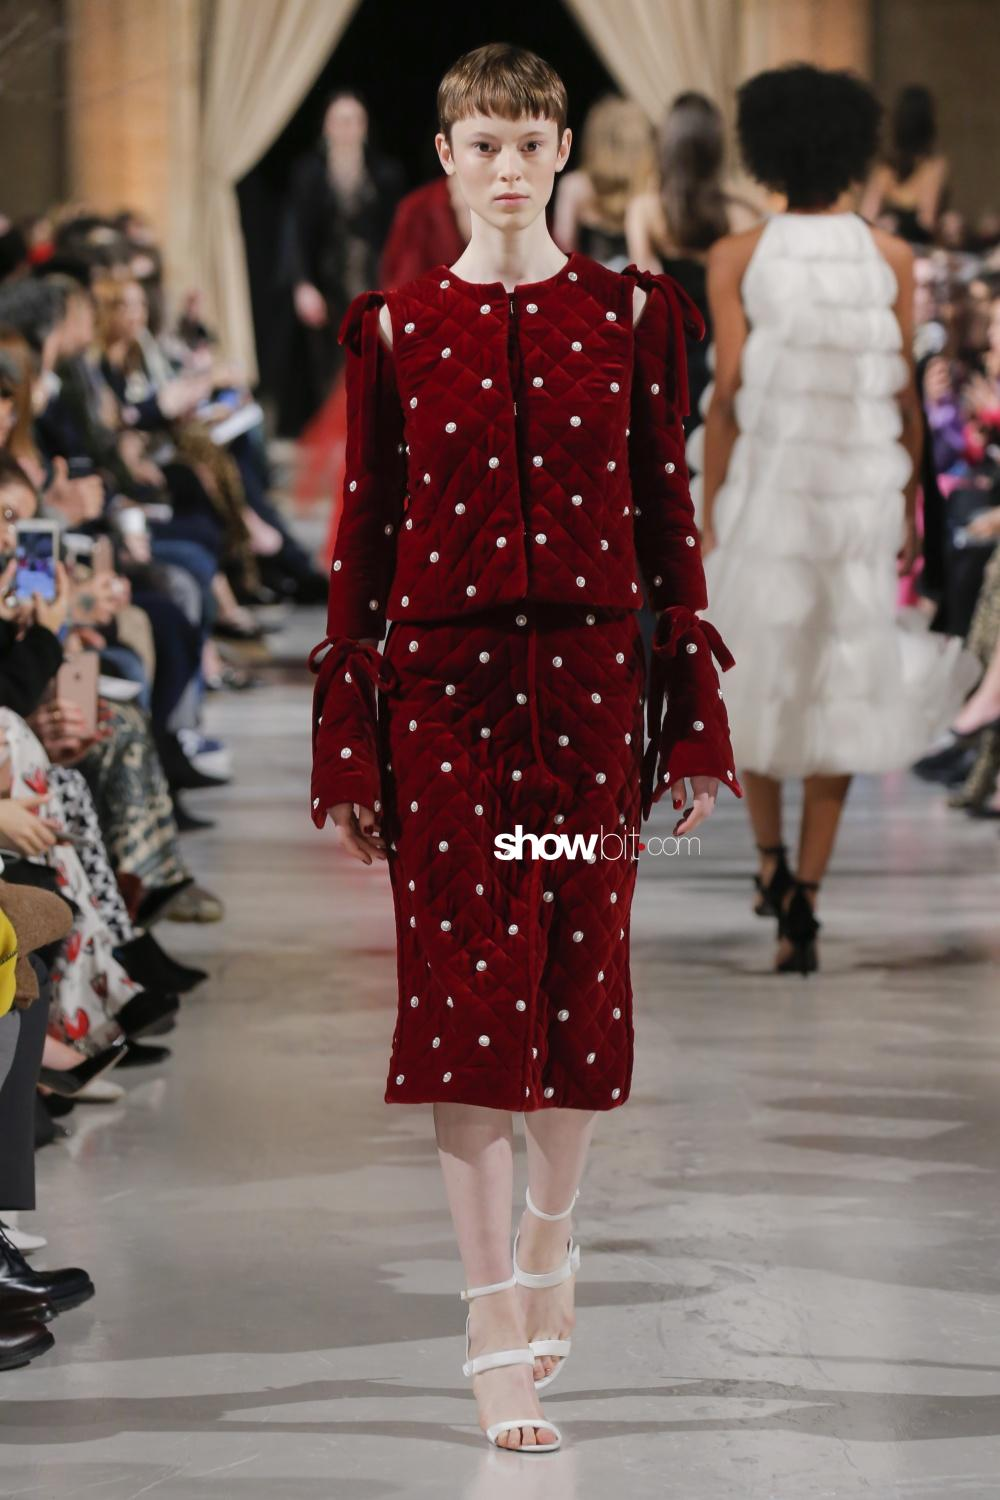 Oscar de la Renta Women's New York Fall Winter 2018